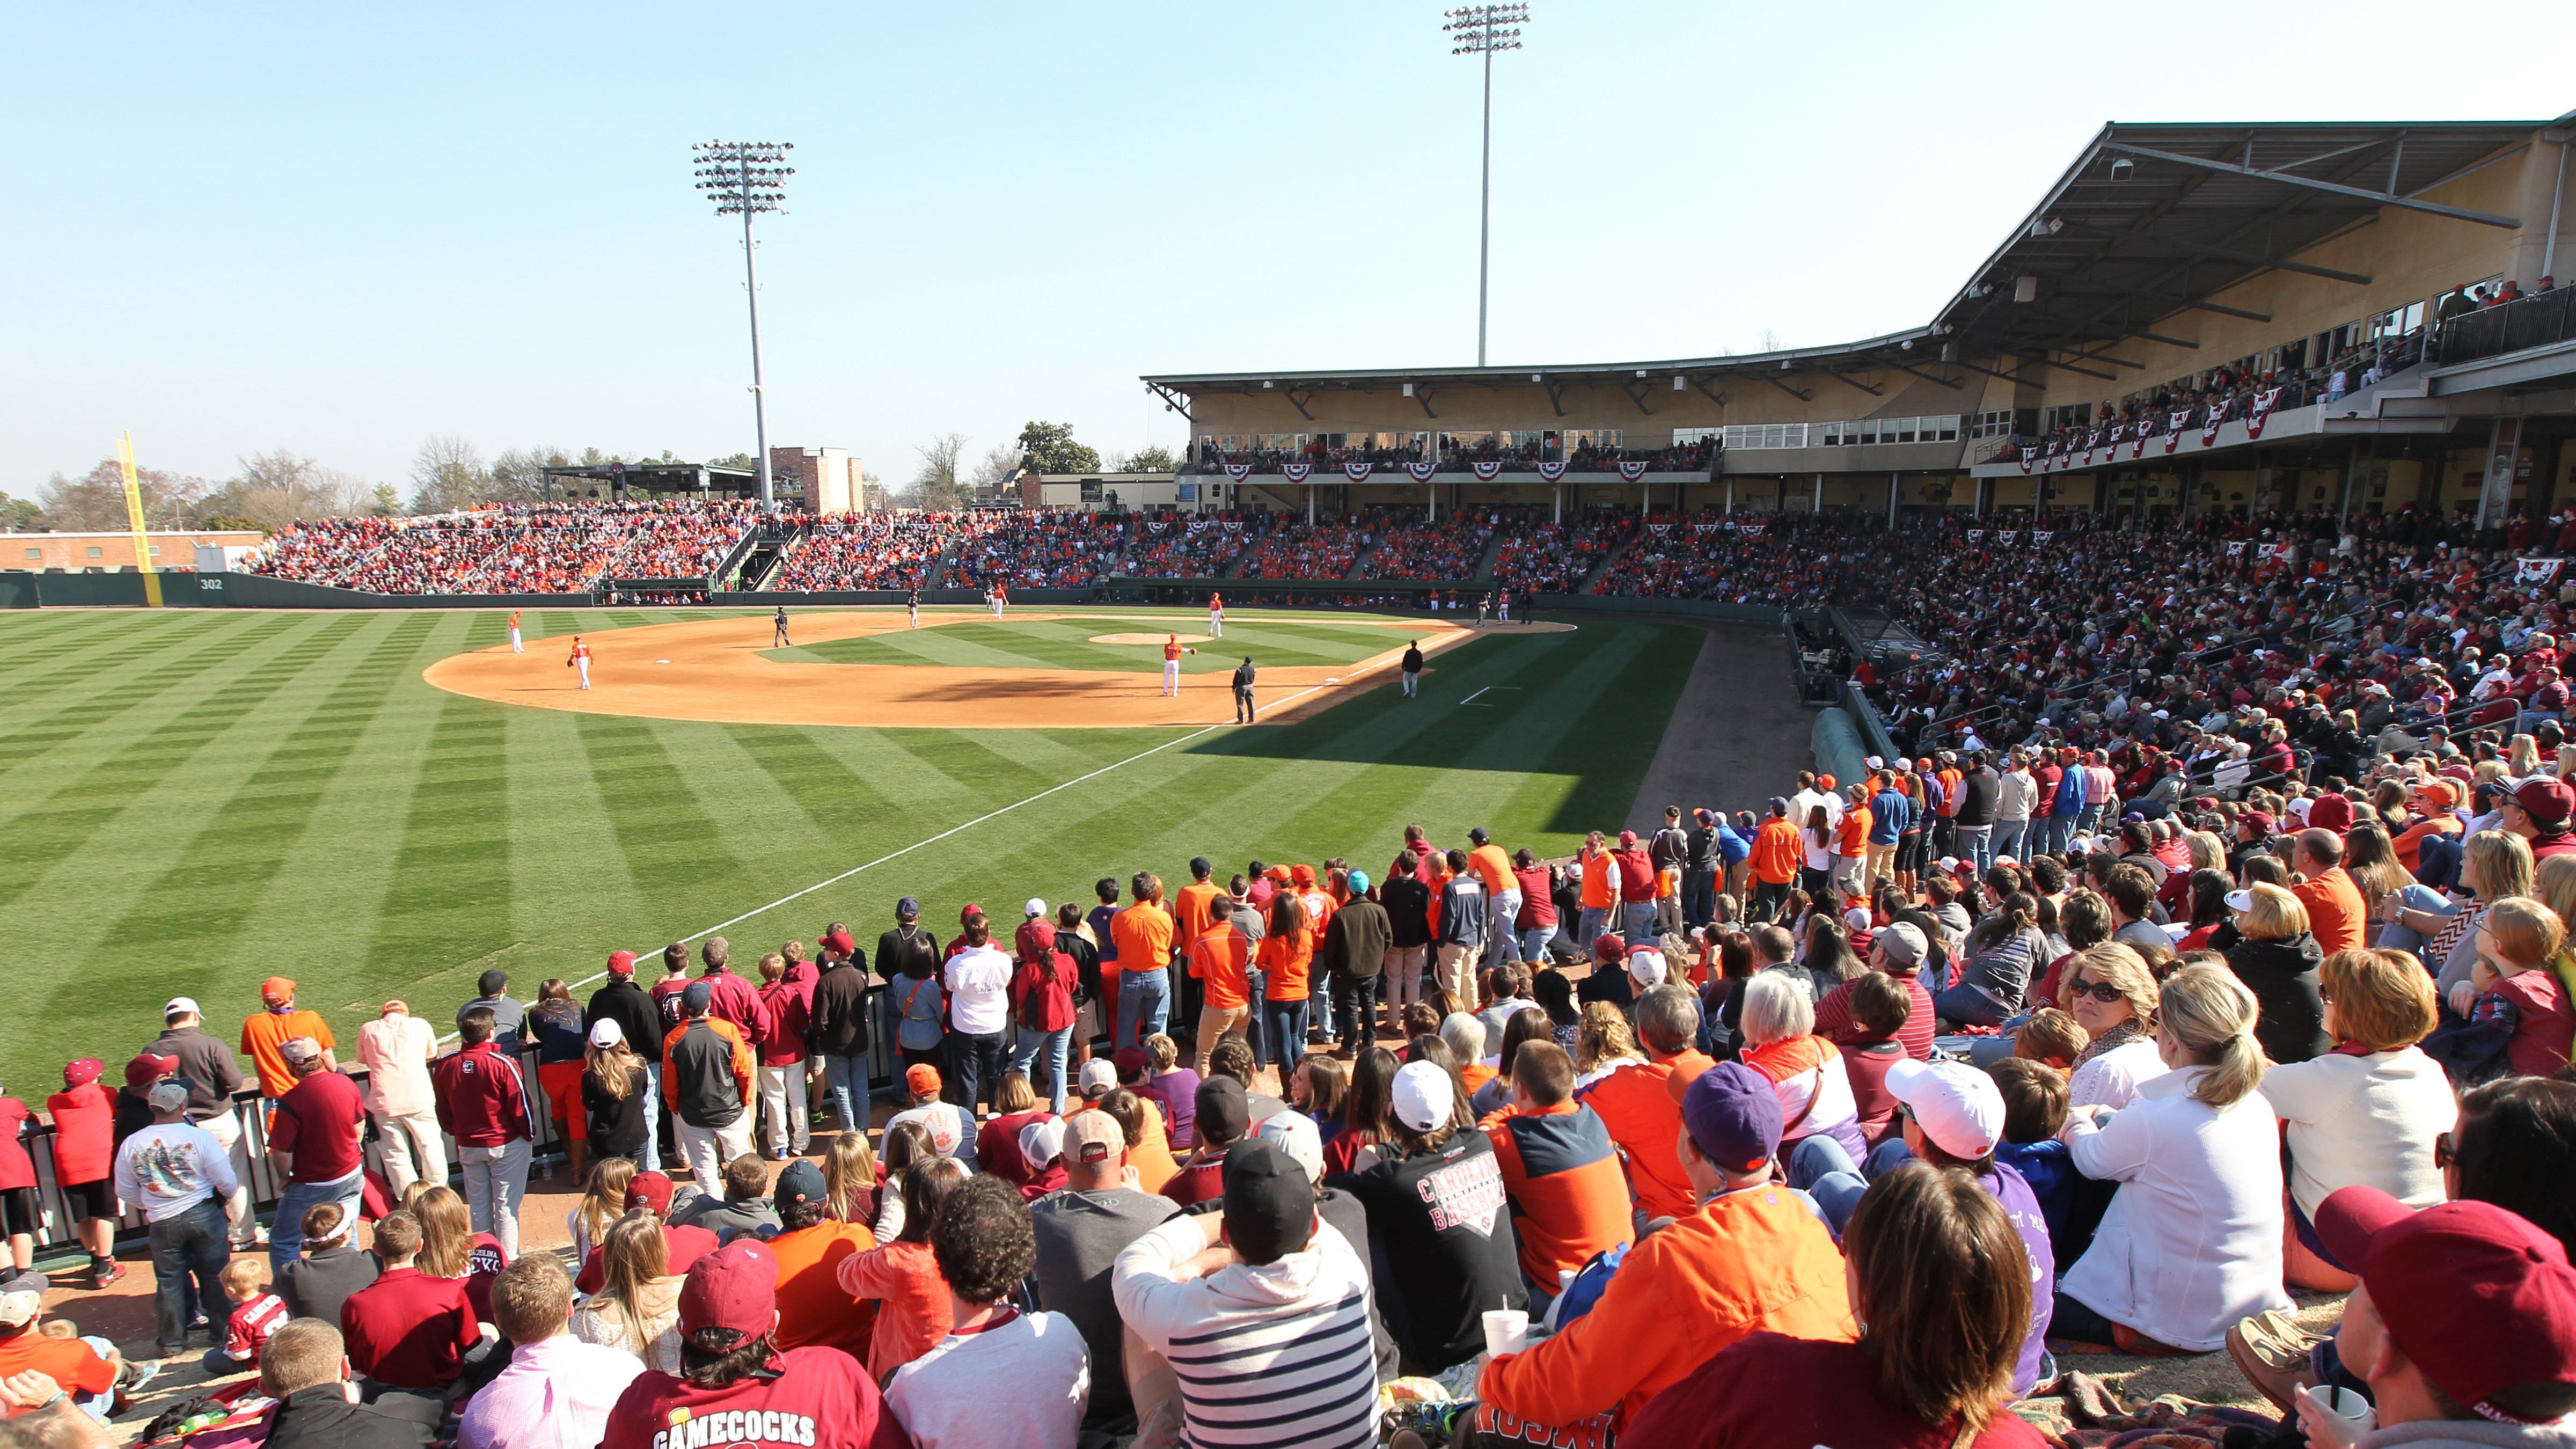 Tigers & Gamecocks to Meet at Fluor Field From 2015-18